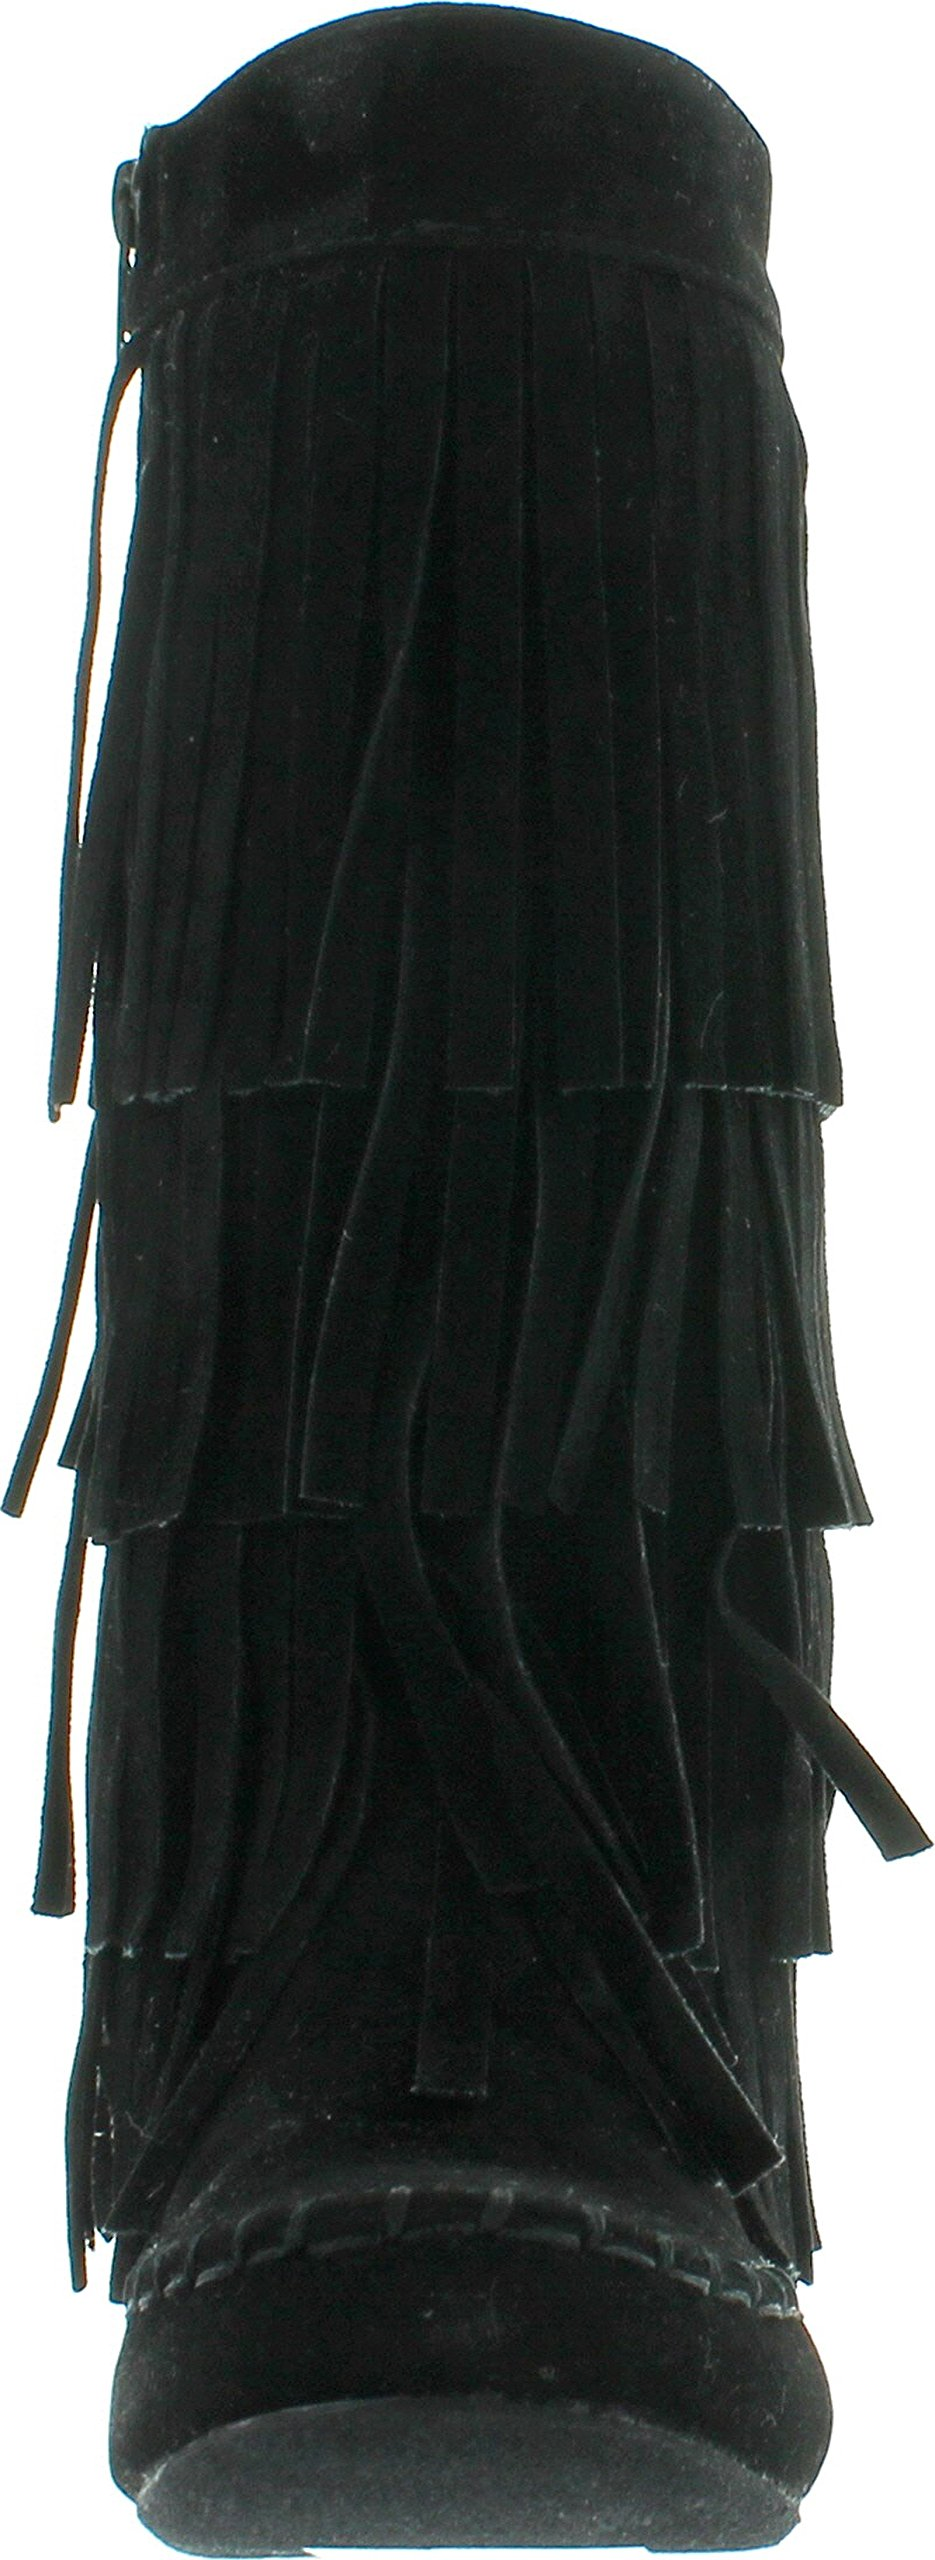 I LOVE KIDS Ava-18K Children's 3-Layers Fringe Moccasin Style Mid-Calf Boots,Black,13 by I LOVE KIDS (Image #3)